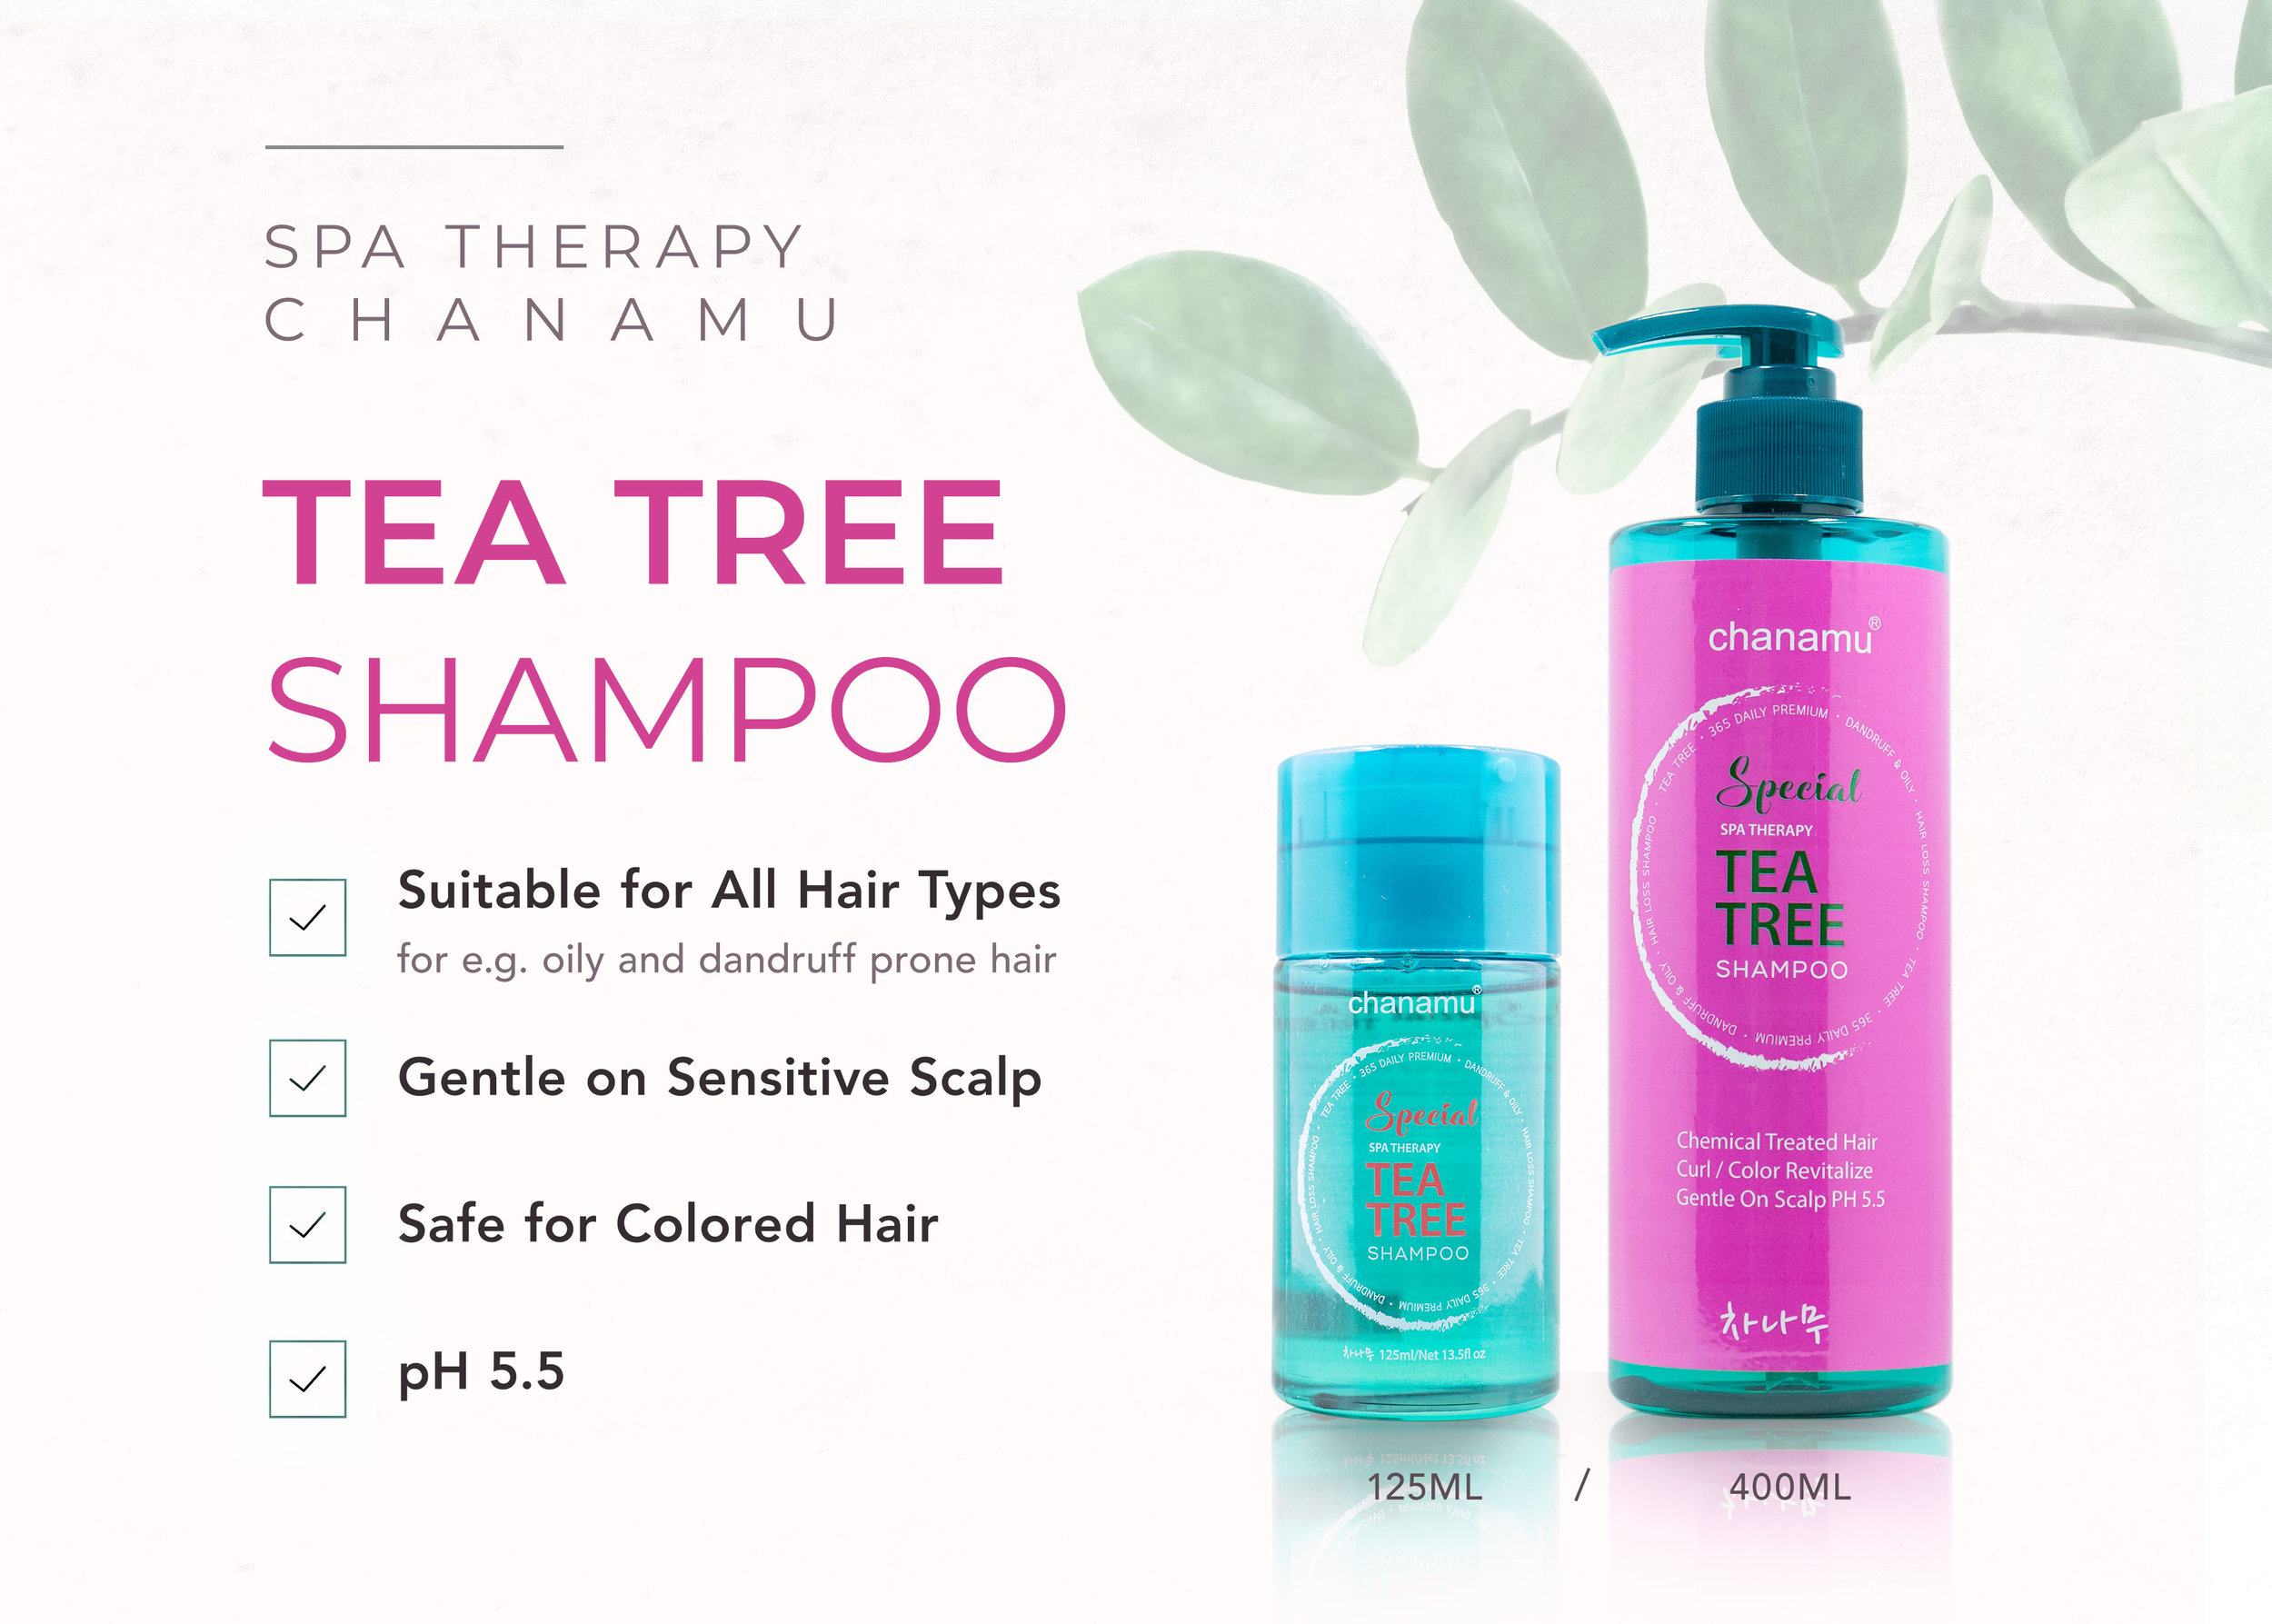 Chanamu Tea Tree Shampoo that comes in 125ml and 400ml, designed in Korea and sold in Singapore by DuSol Beauty and Hanastory